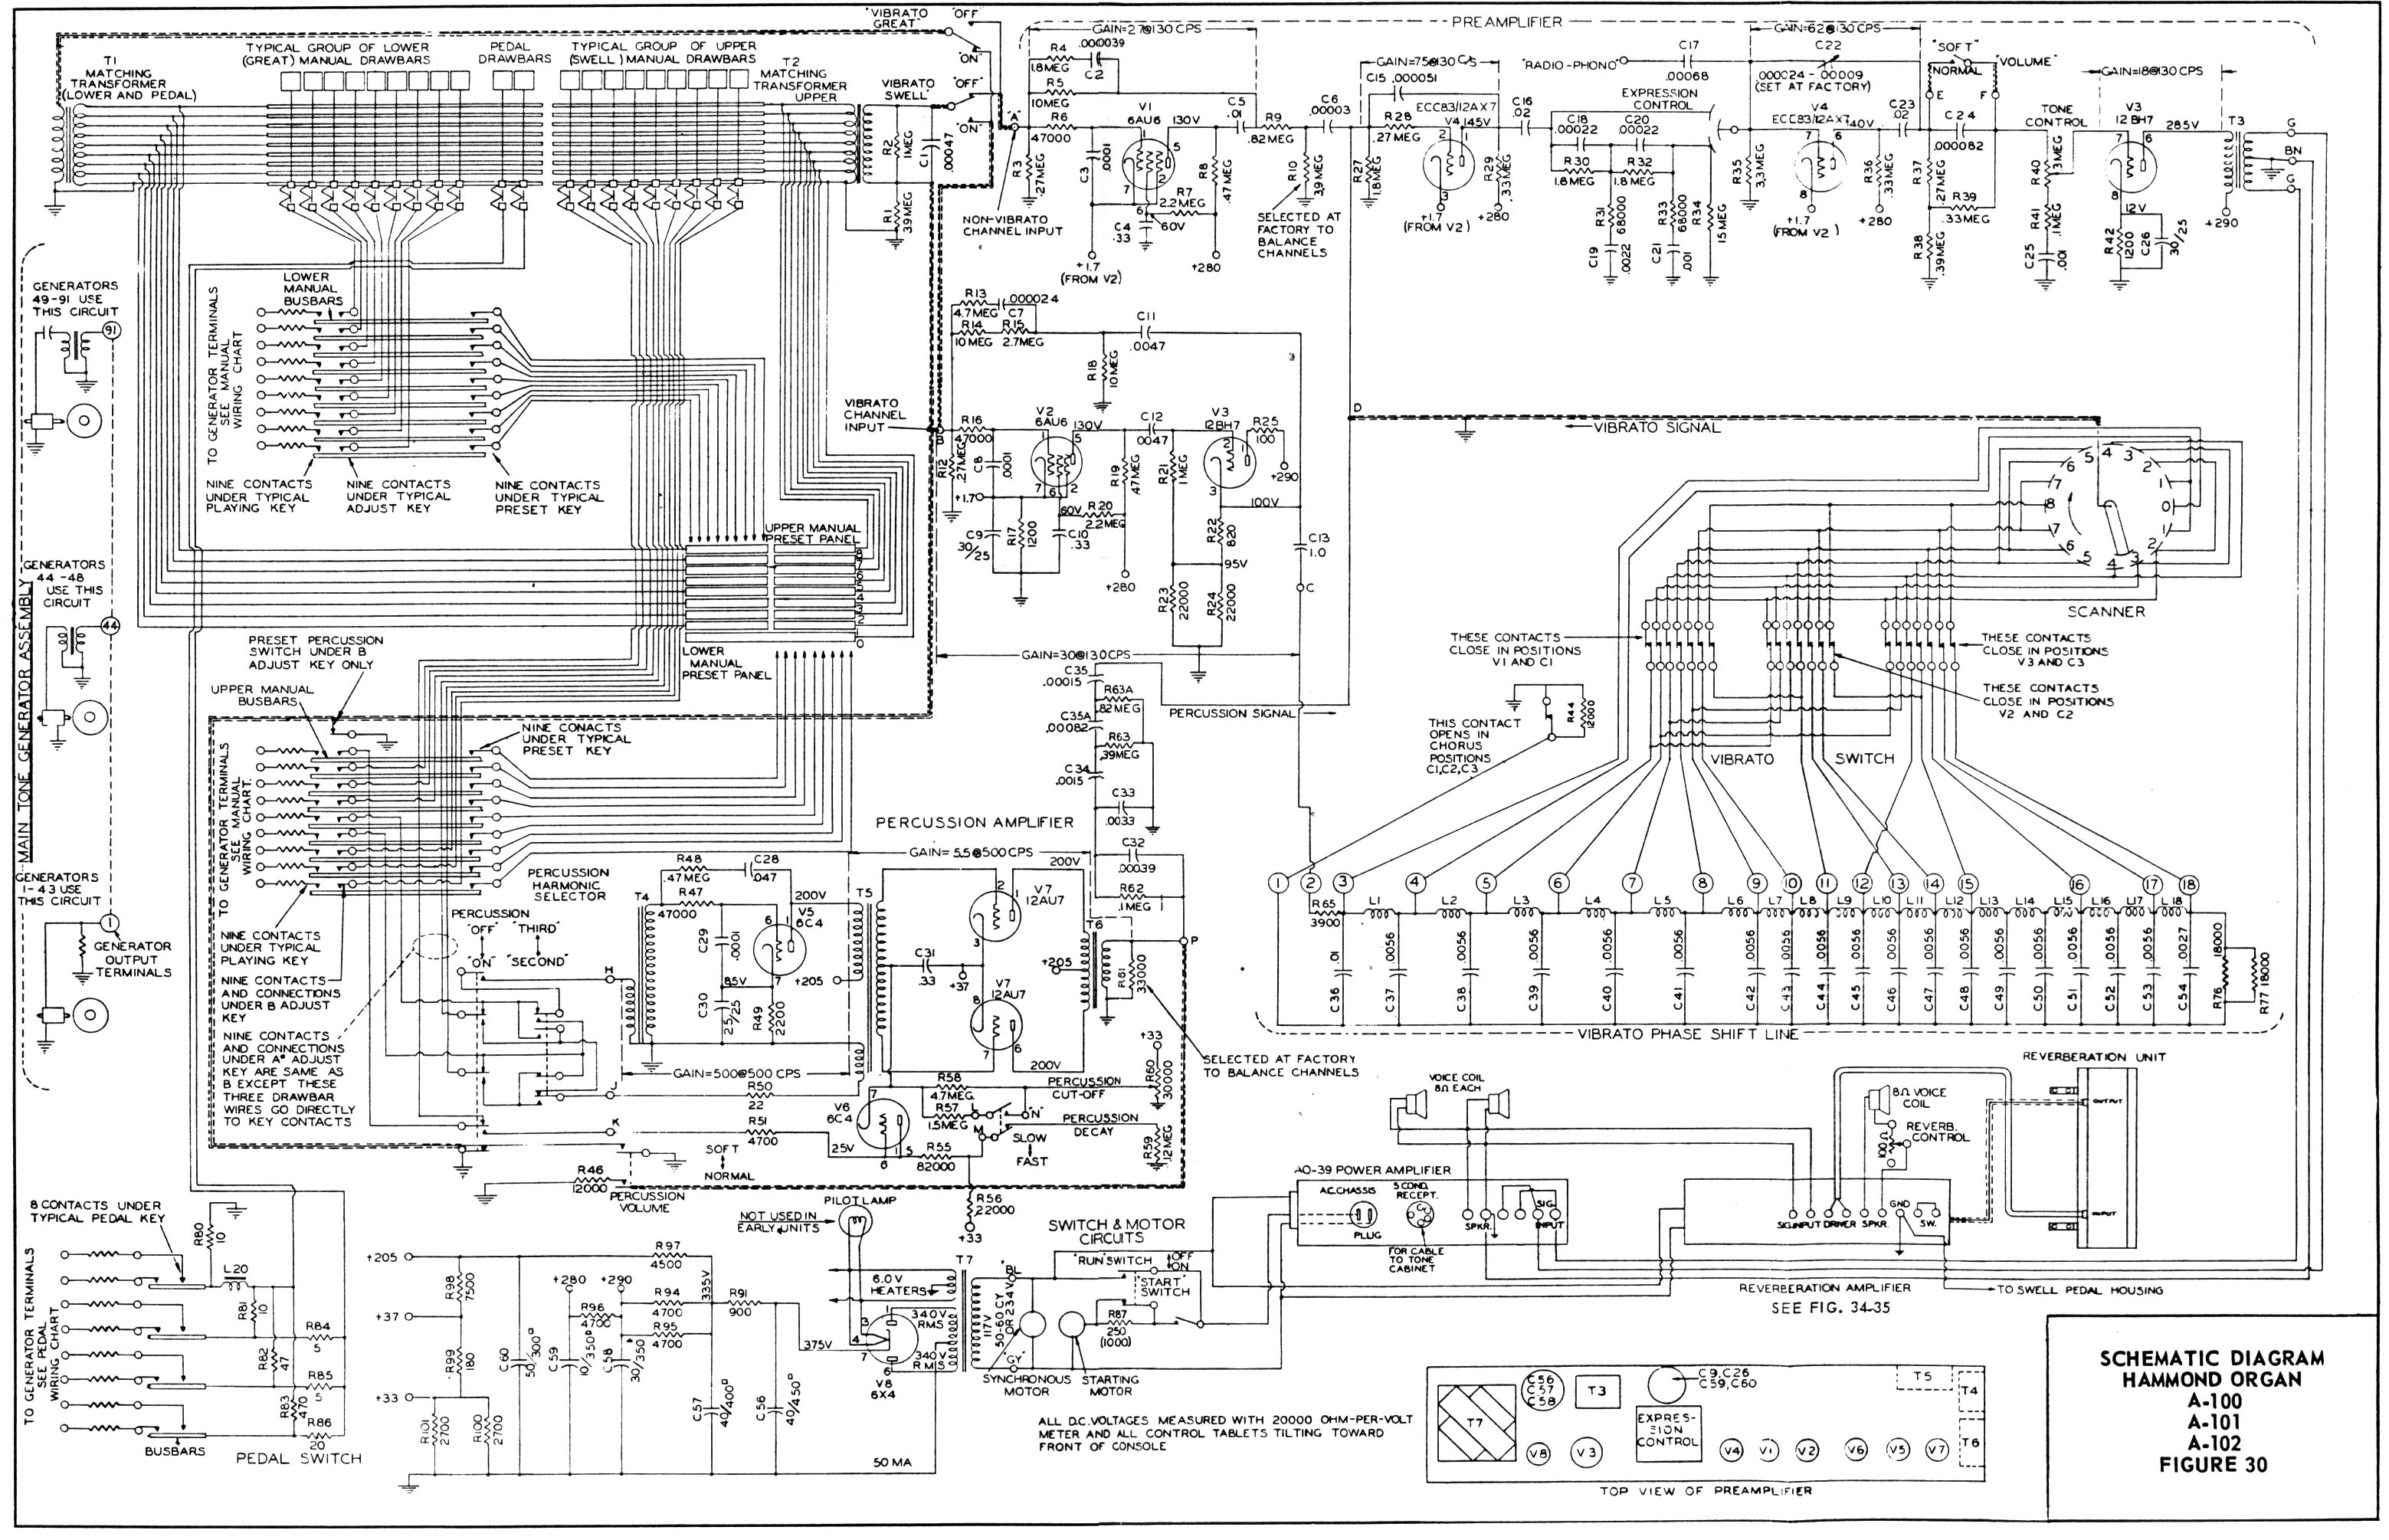 schem1 boss sd 1 super overdrive guitar pedal schematic diagram kt 74 wiring diagram at cos-gaming.co